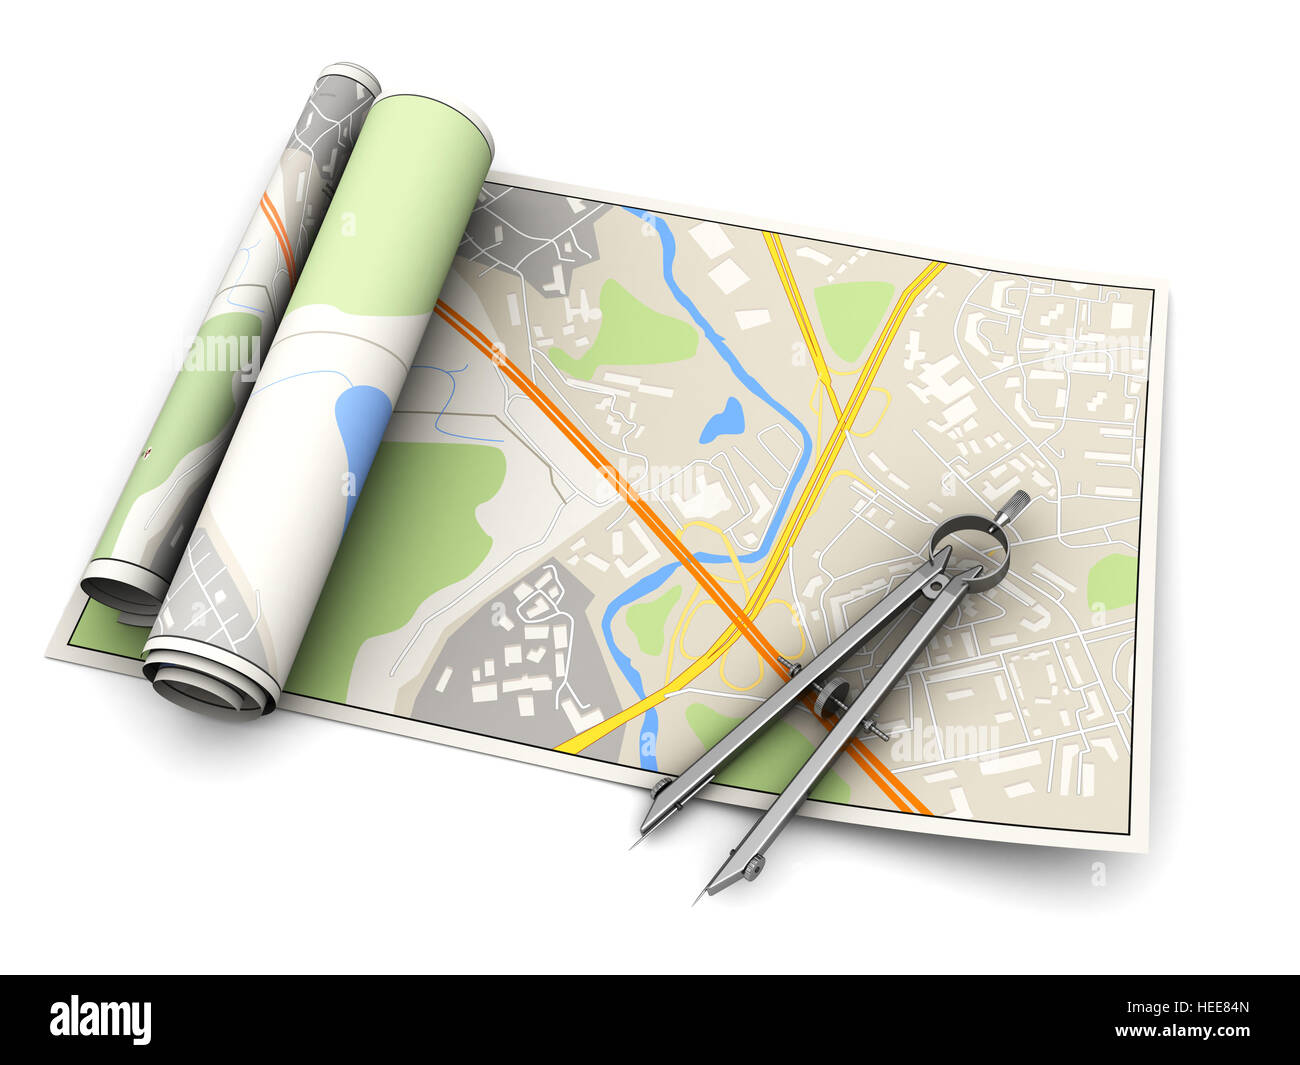 3d illustration of city map with measure tool over white background - Stock Image